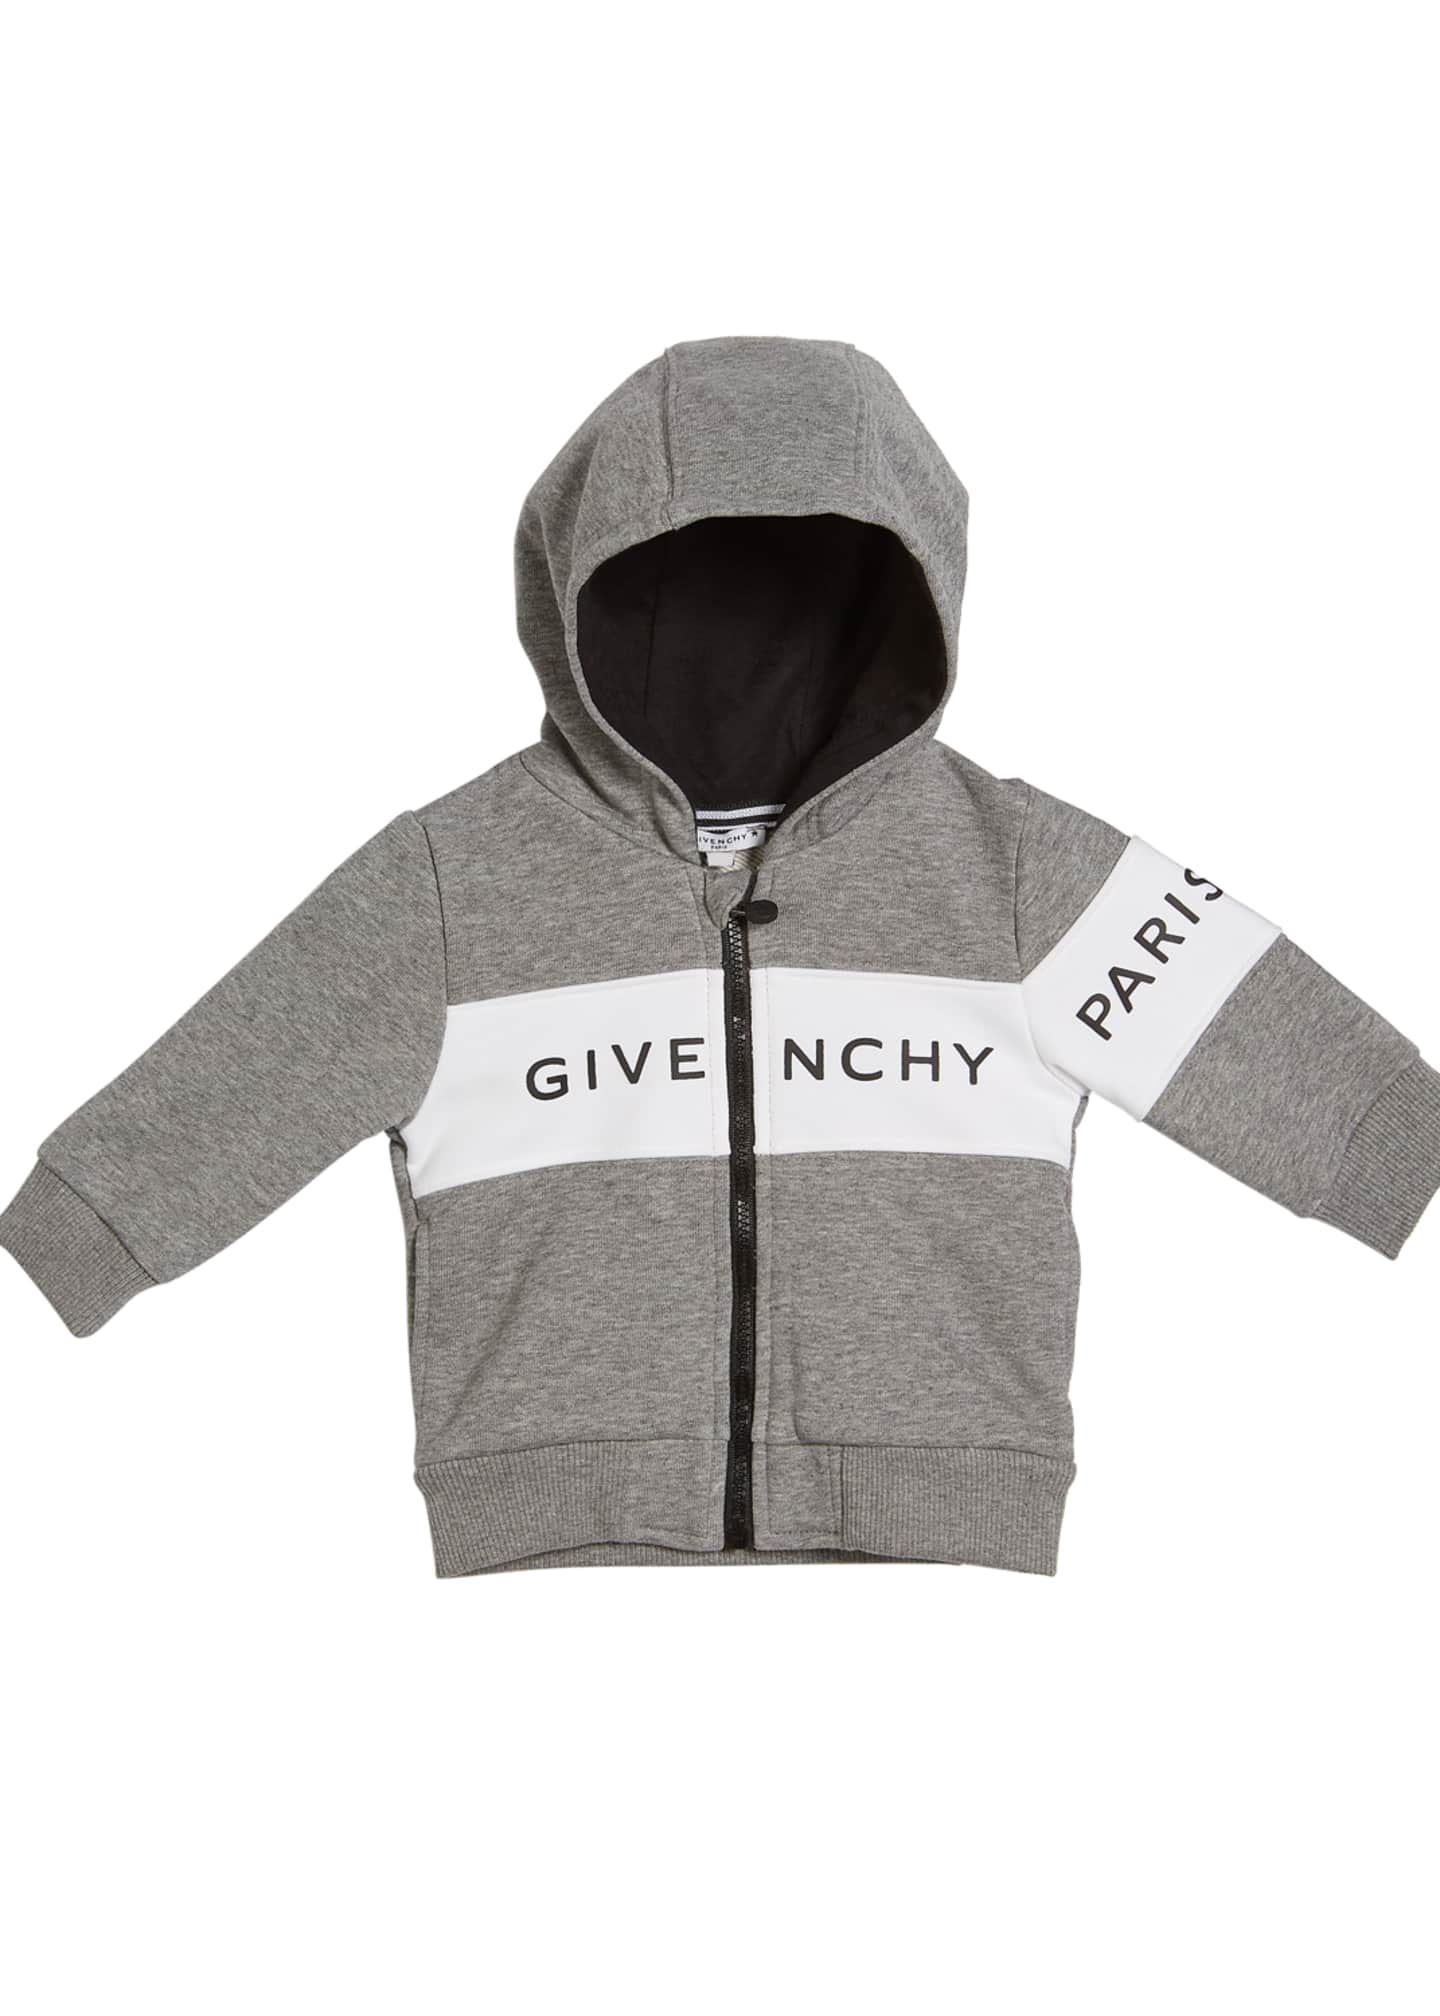 Givenchy Boy's Colorblock Hooded Zip-Up Logo Jacket, Size